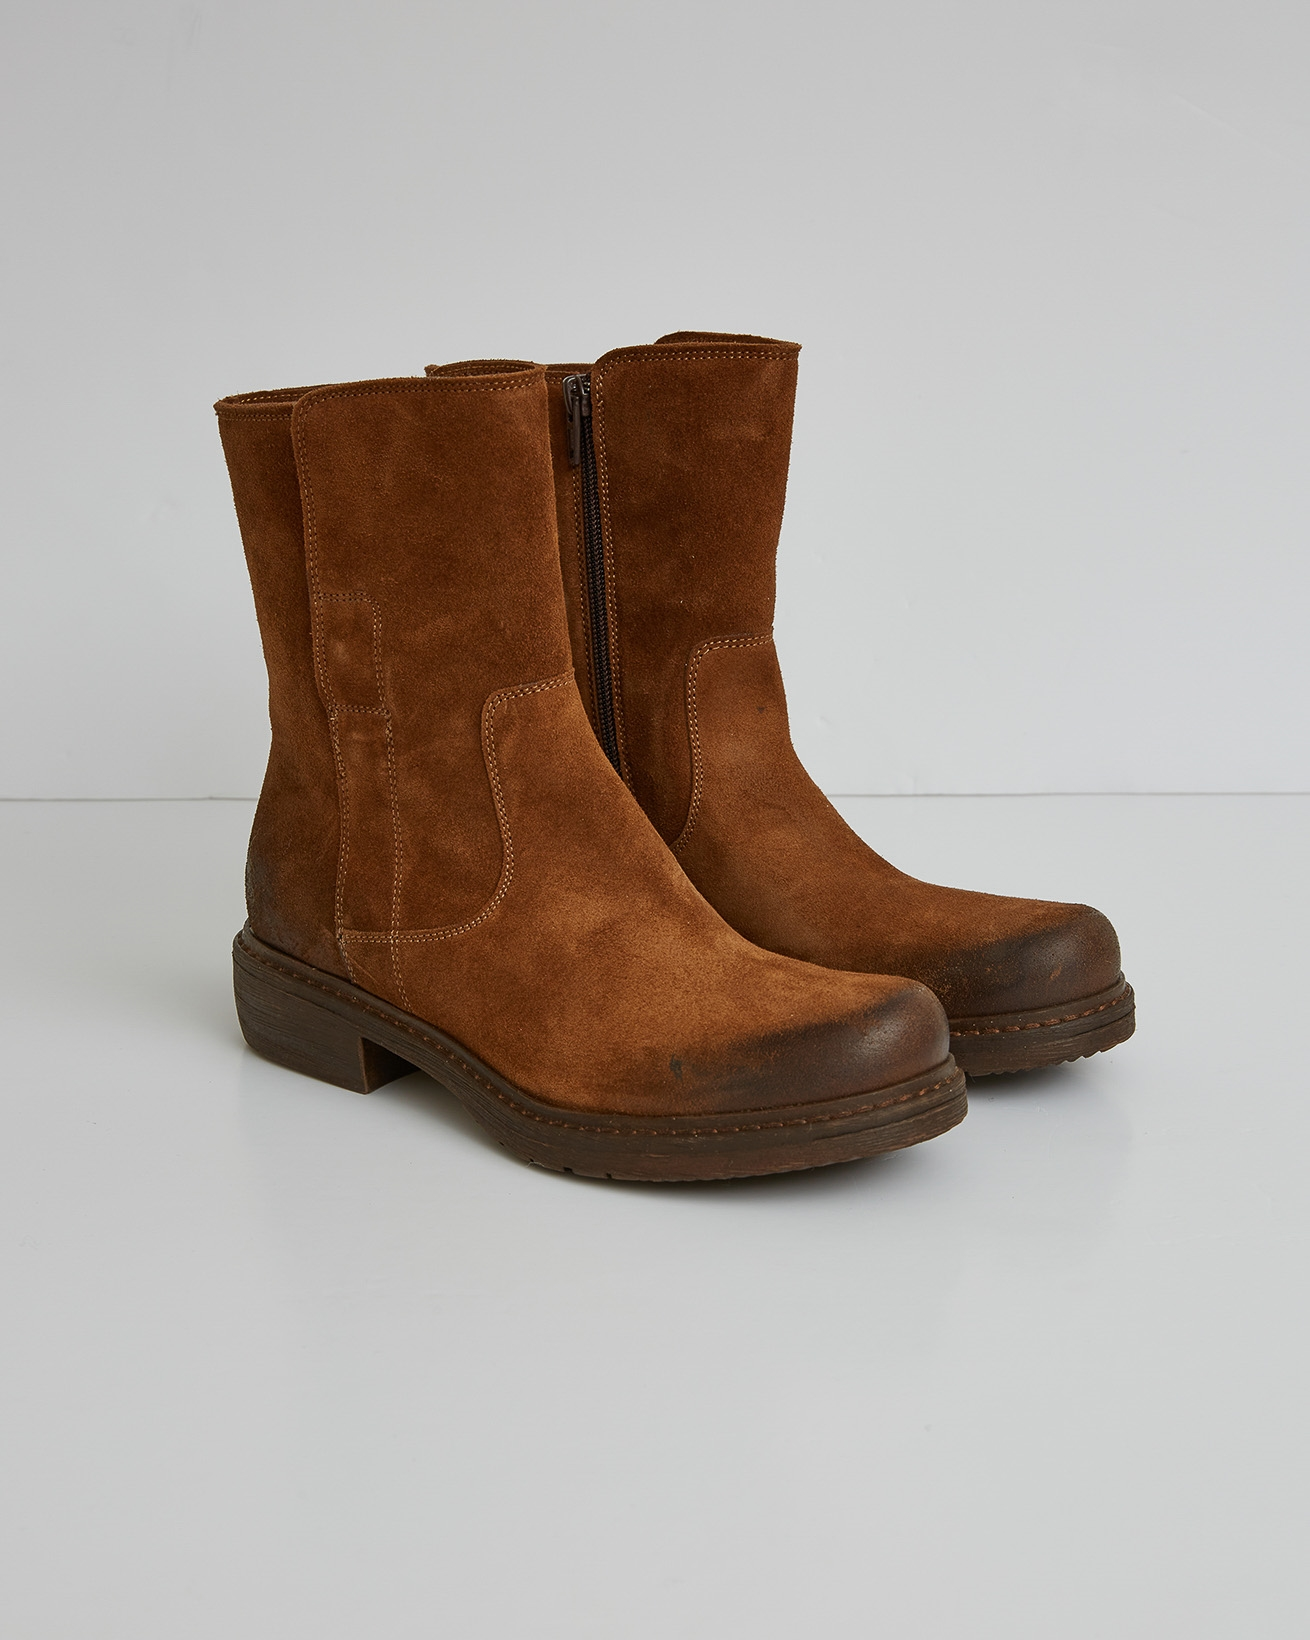 Essential Leather Ankle Boot - Cinnamon - Size 37 - 2770